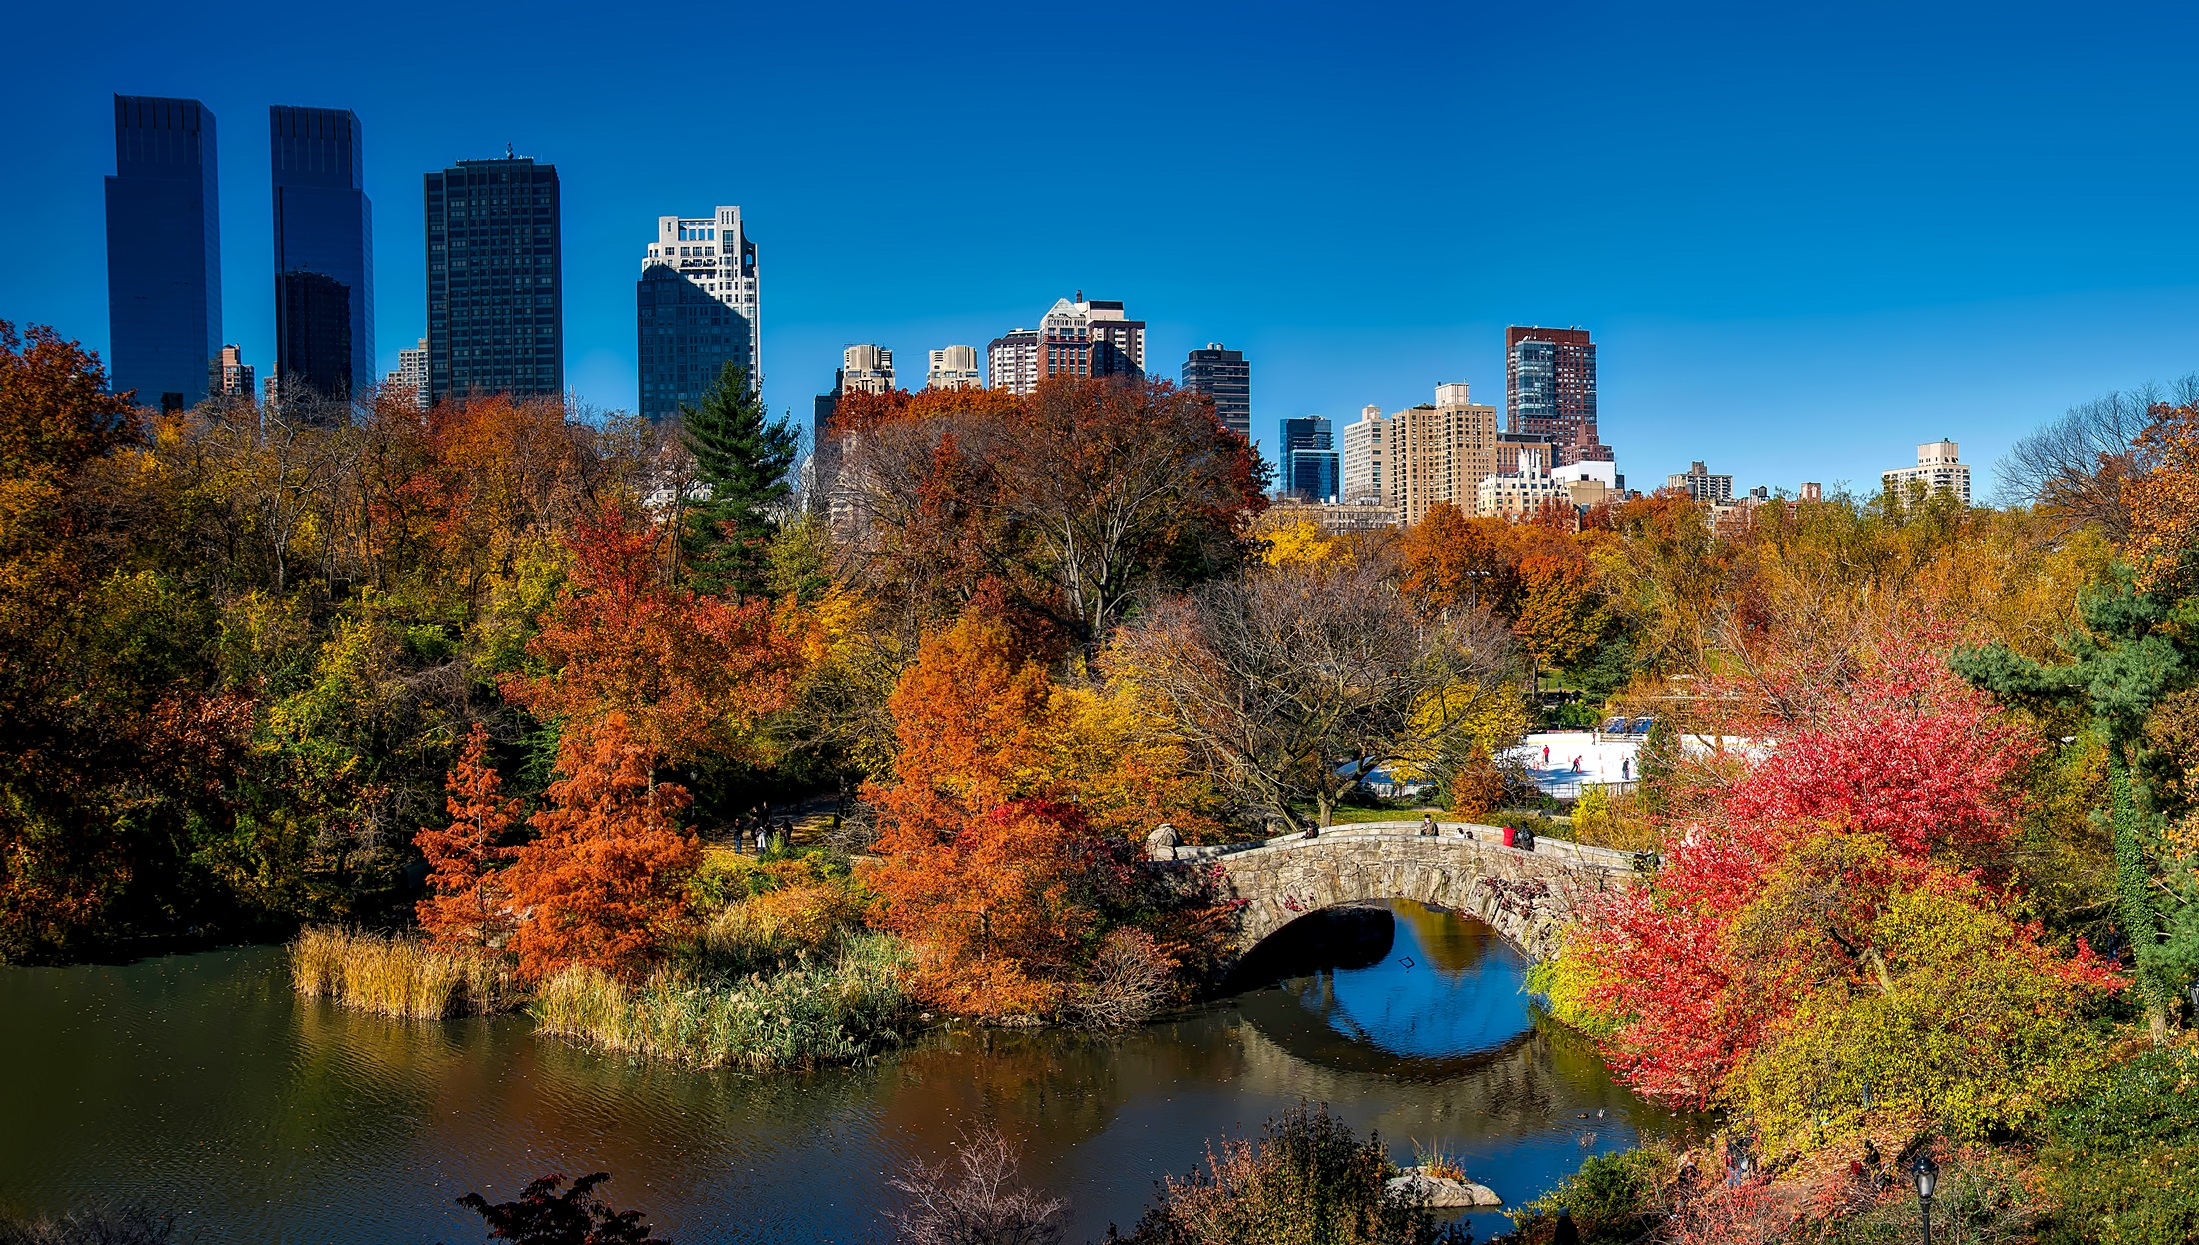 landscape-tree-water-skyline-leaf-fall-1026655-pxhere.com.jpg